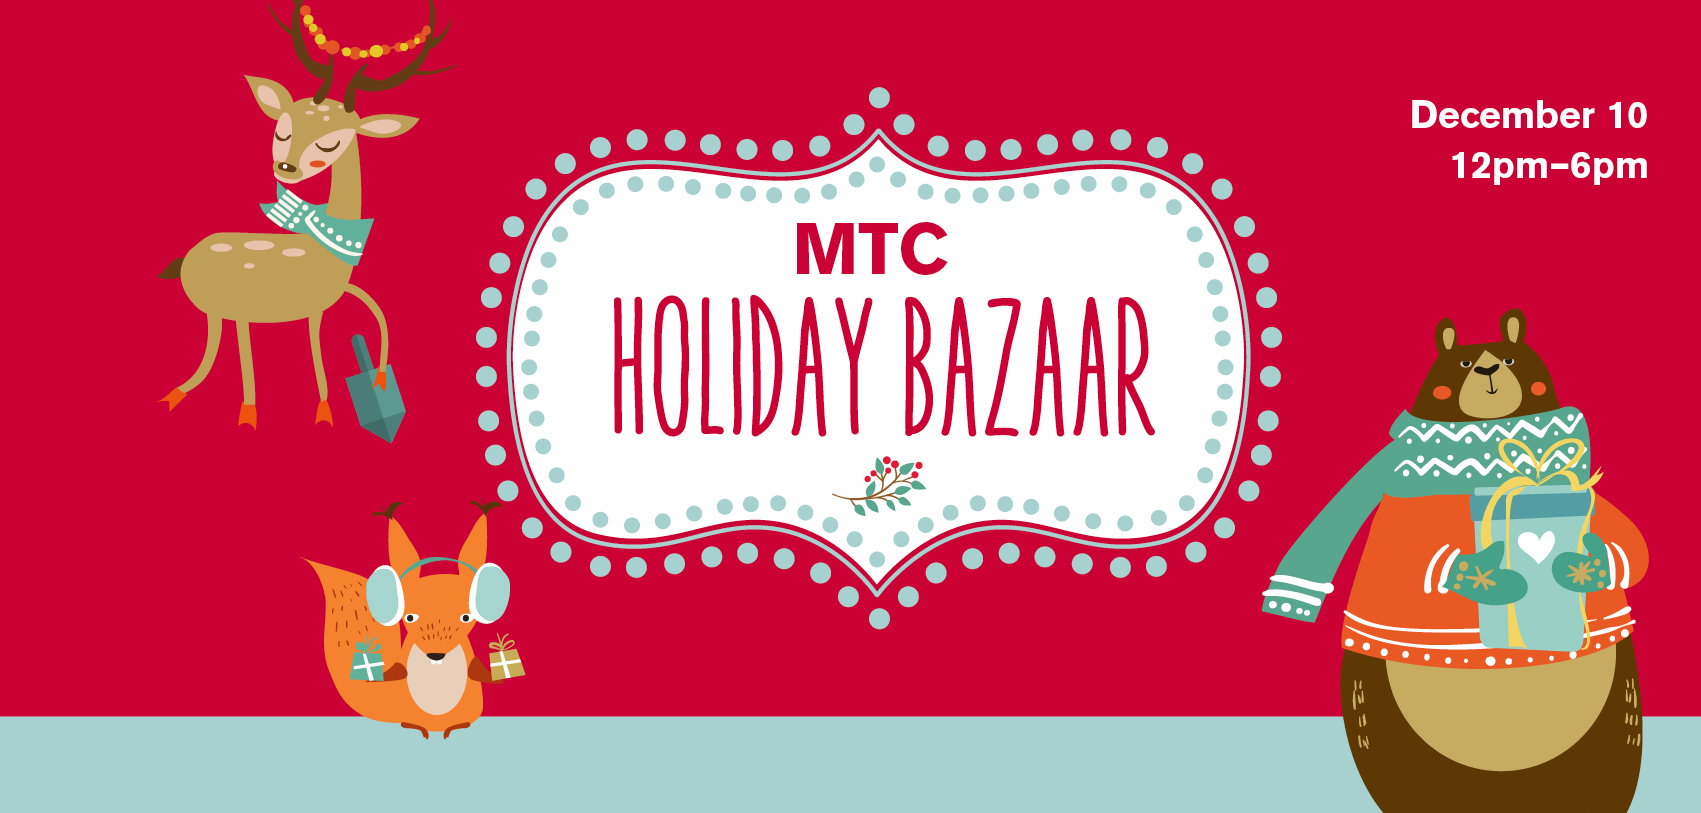 mtc-holiday-bazaar